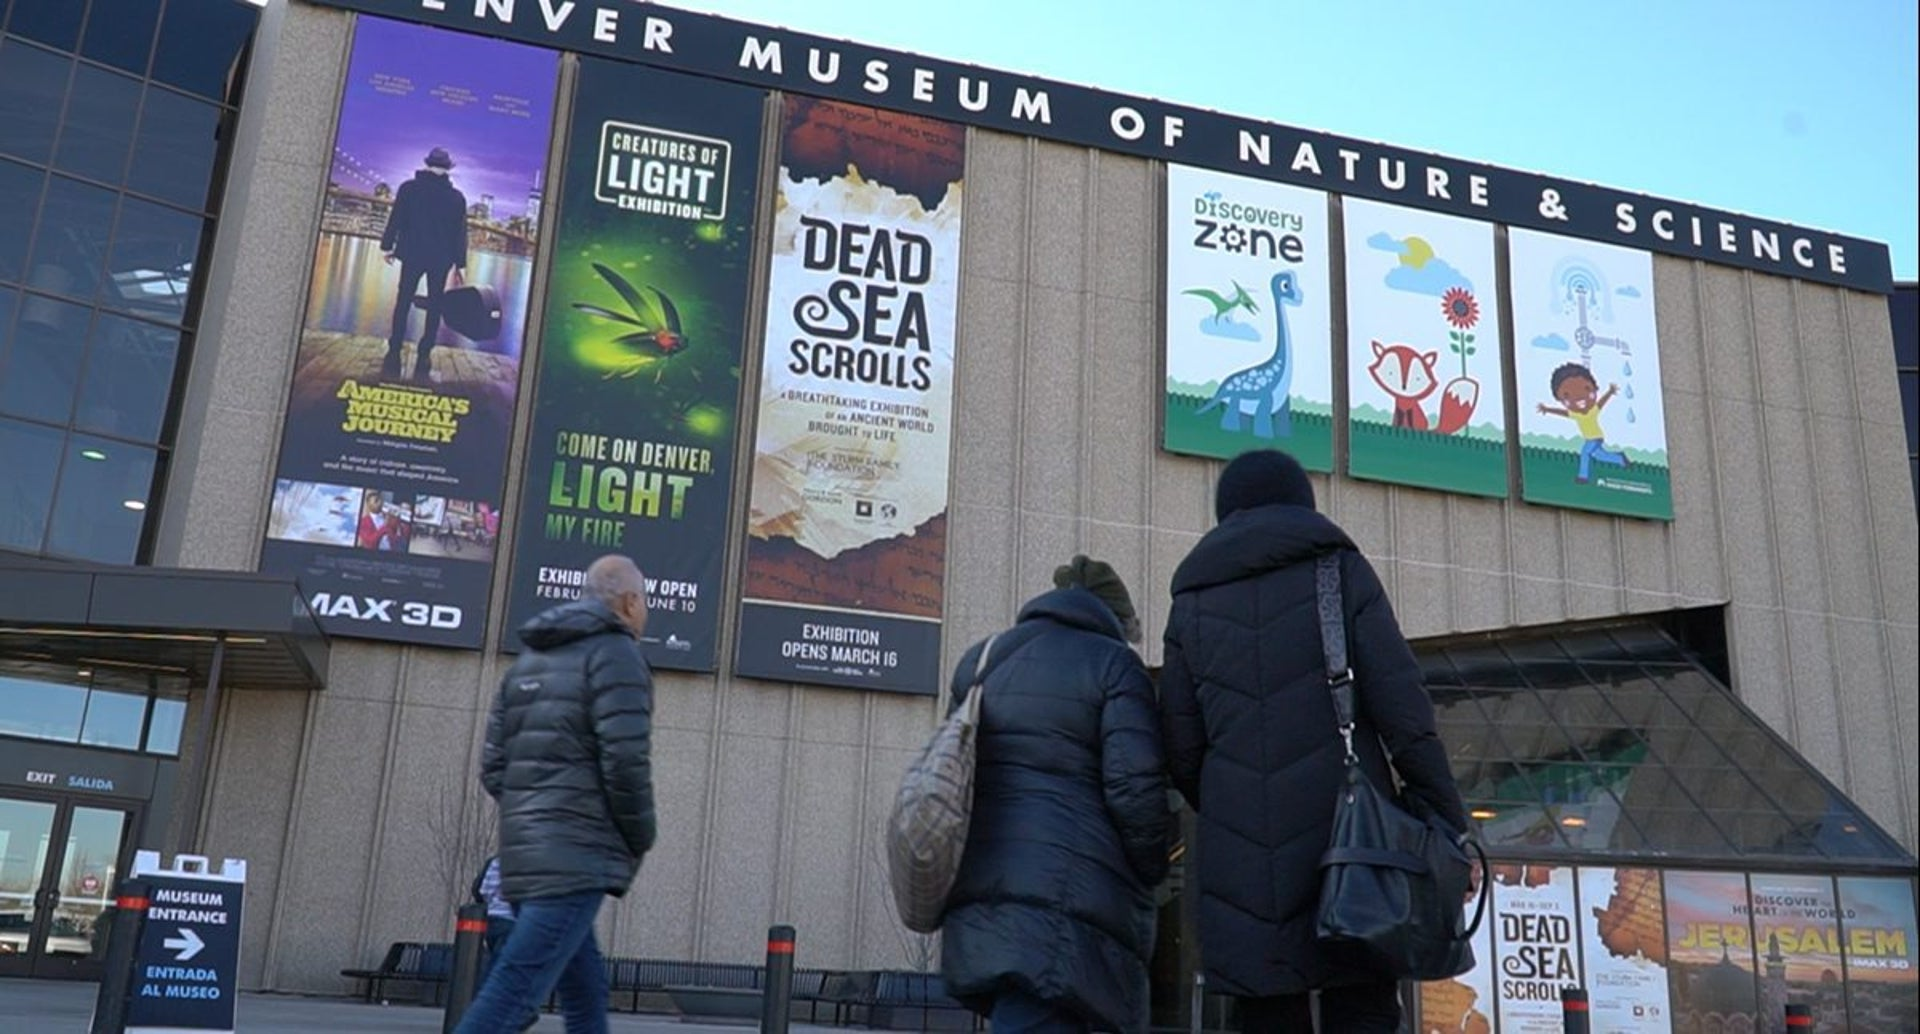 Entrance to the Denver Museum of Science and Nature, Dead Sea Scrolls Exhibit